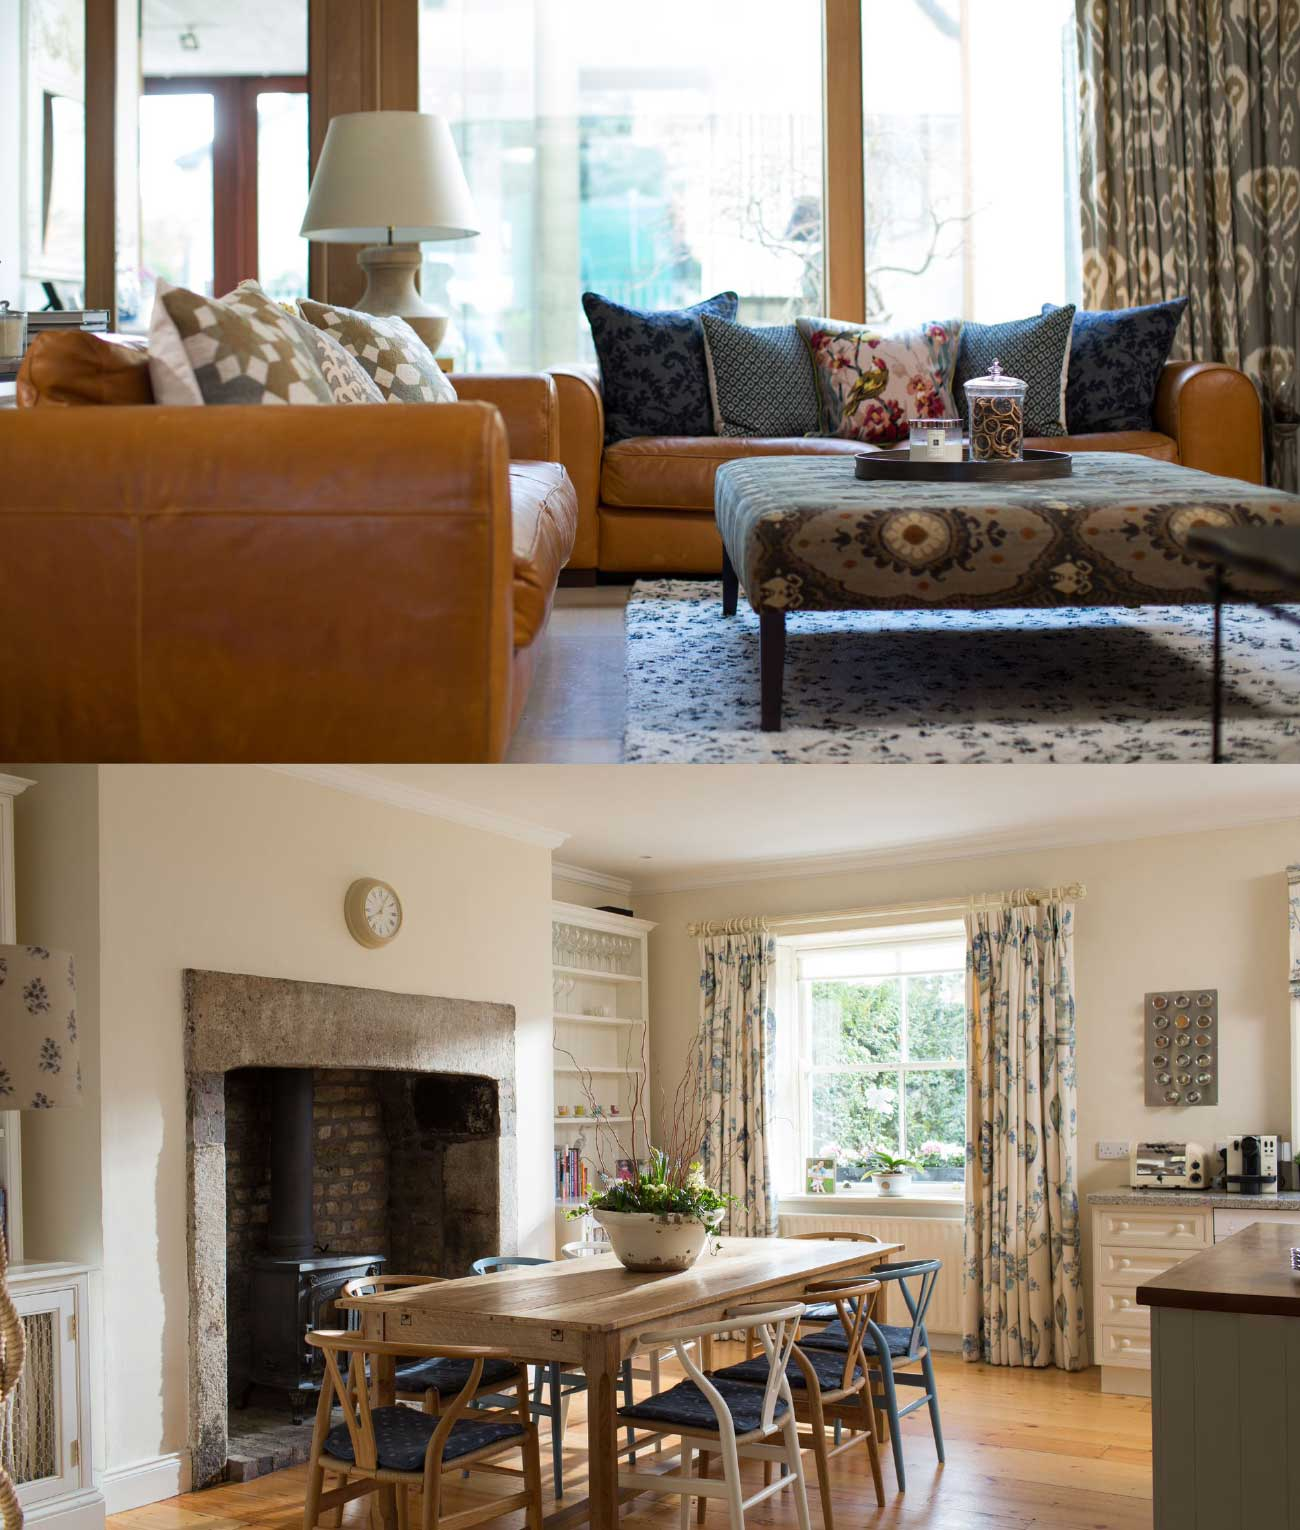 Thompson Clarke Interiors - Townhouse Project Image 2